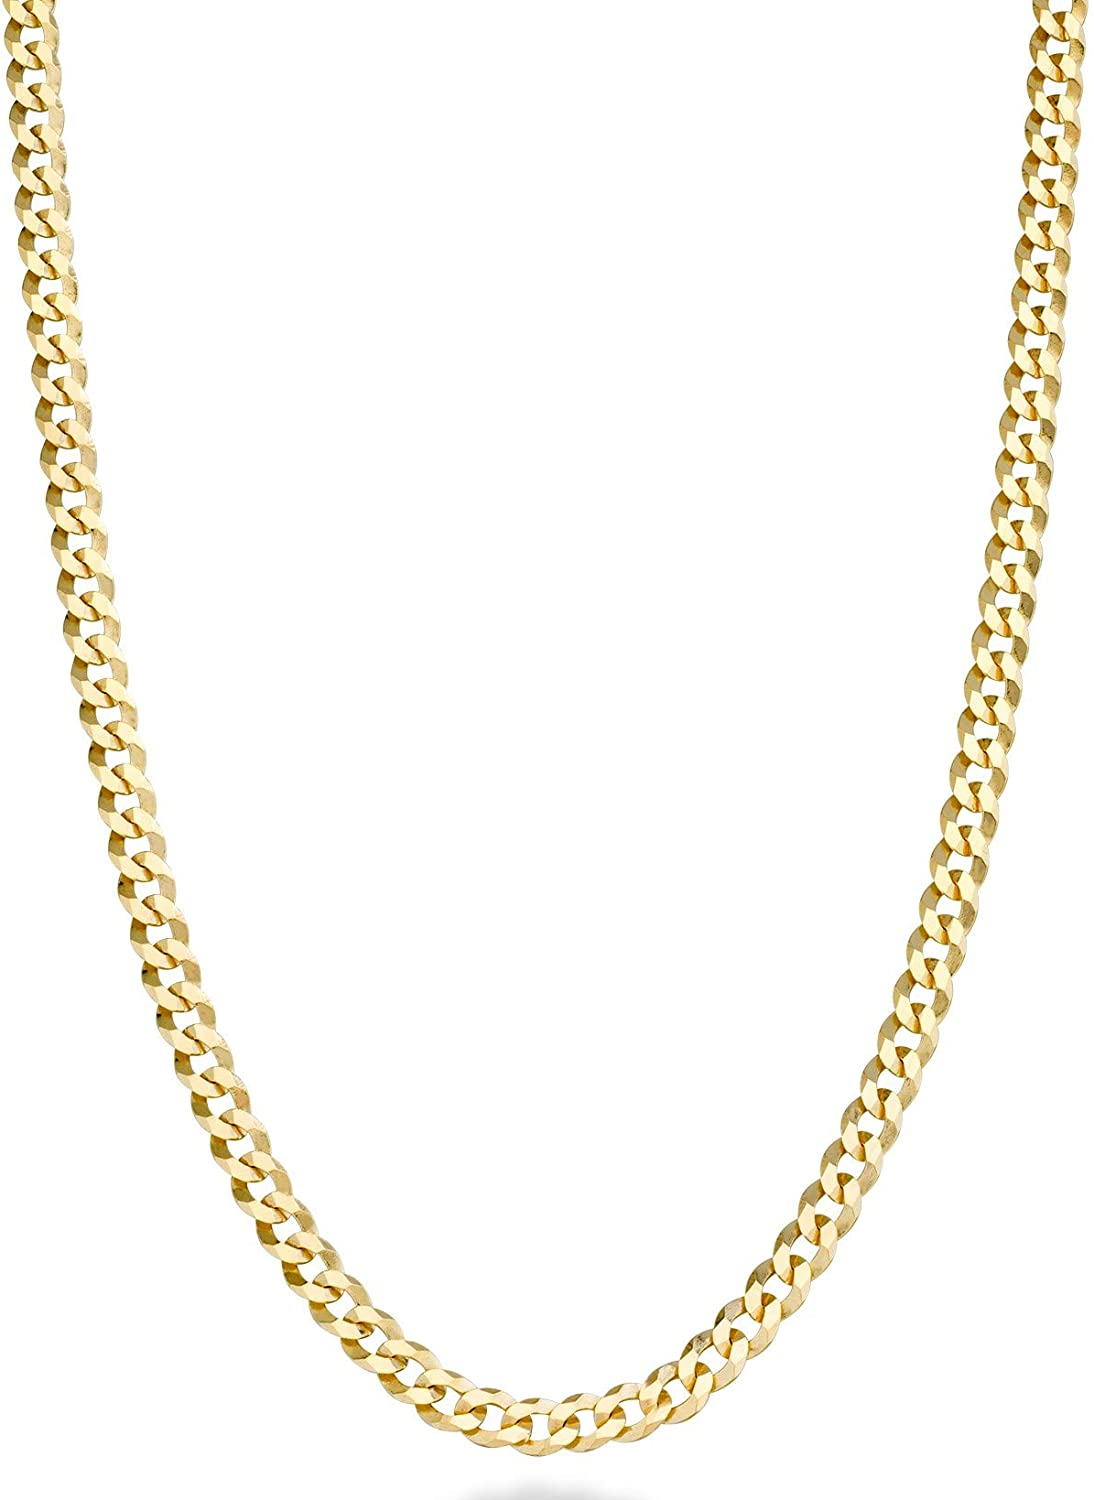 Miabella Solid 18k Gold Over 925 Sterling Silver Italian 3.5mm Diamond Cut Cuban Link Curb Chain Necklace for Women Men, 13+2, 16, 18, 20, 22, 24, 26, 30 Inch Made in Italy